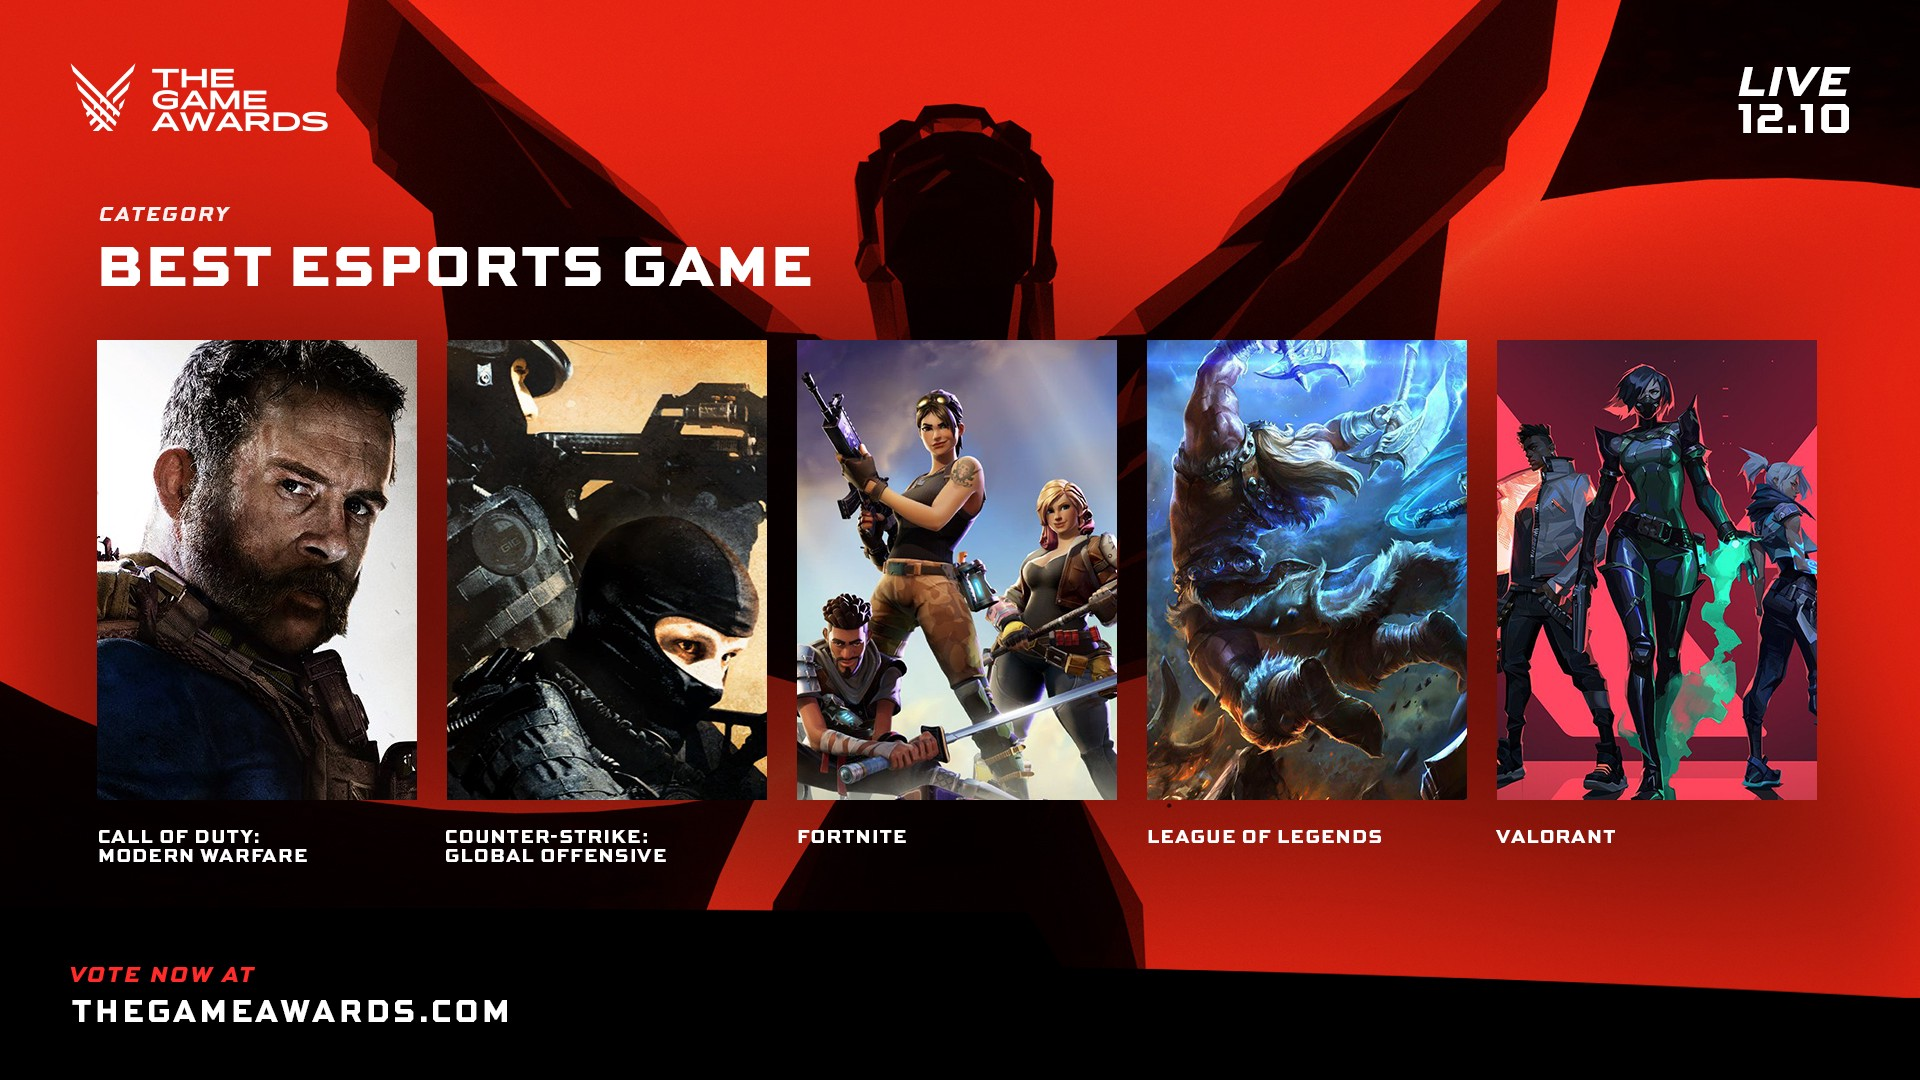 Best esports game at The Game Awards